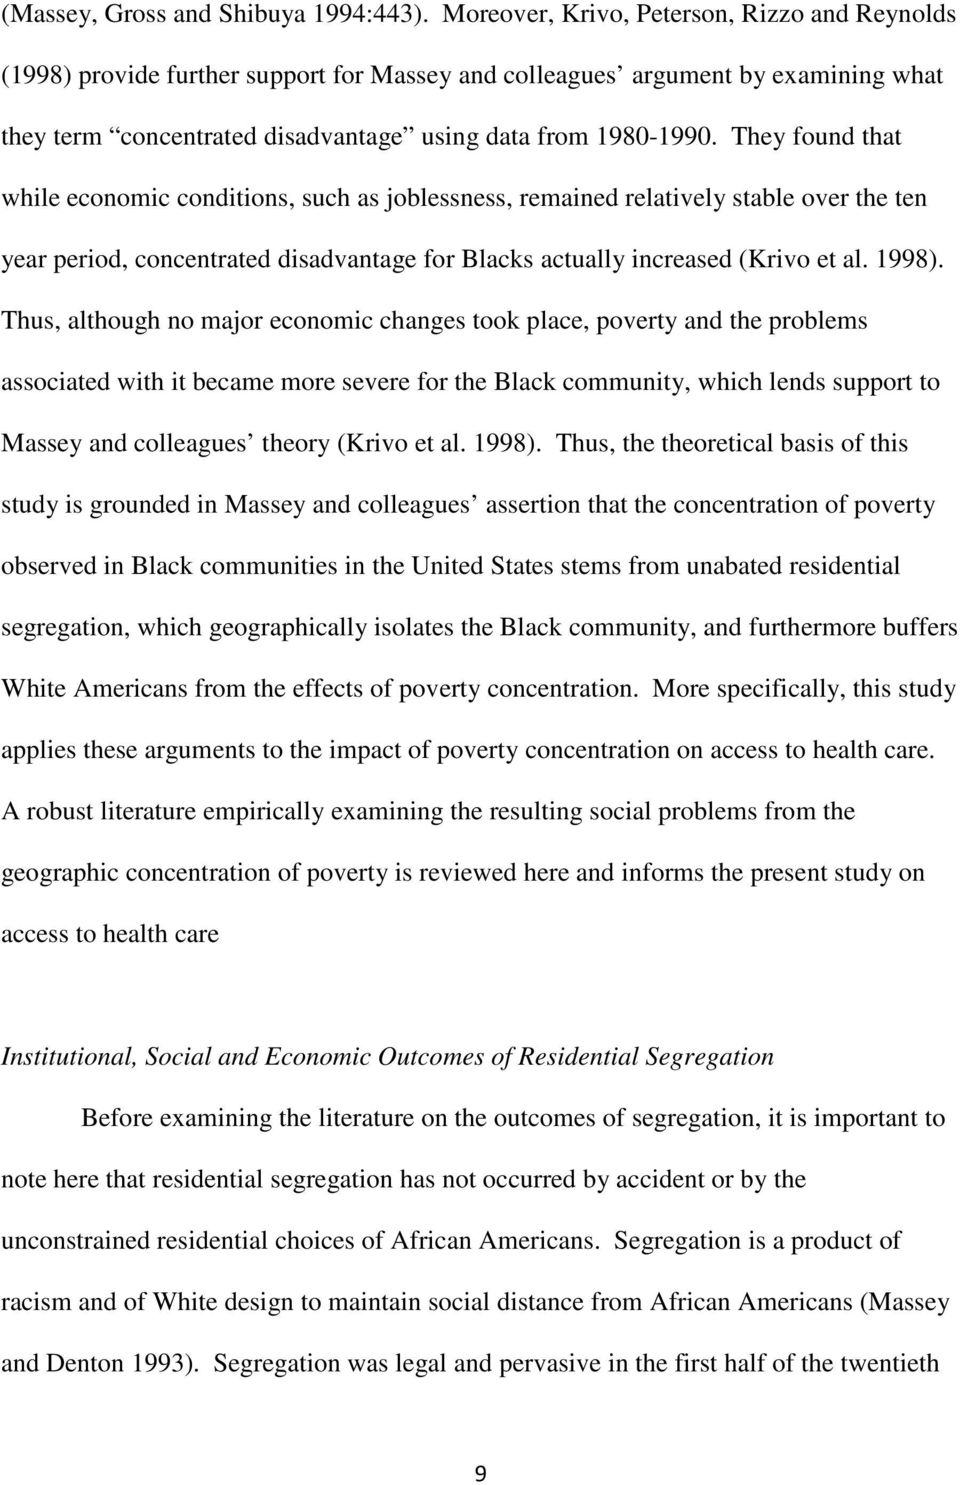 They found that while economic conditions, such as joblessness, remained relatively stable over the ten year period, concentrated disadvantage for Blacks actually increased (Krivo et al. 1998).